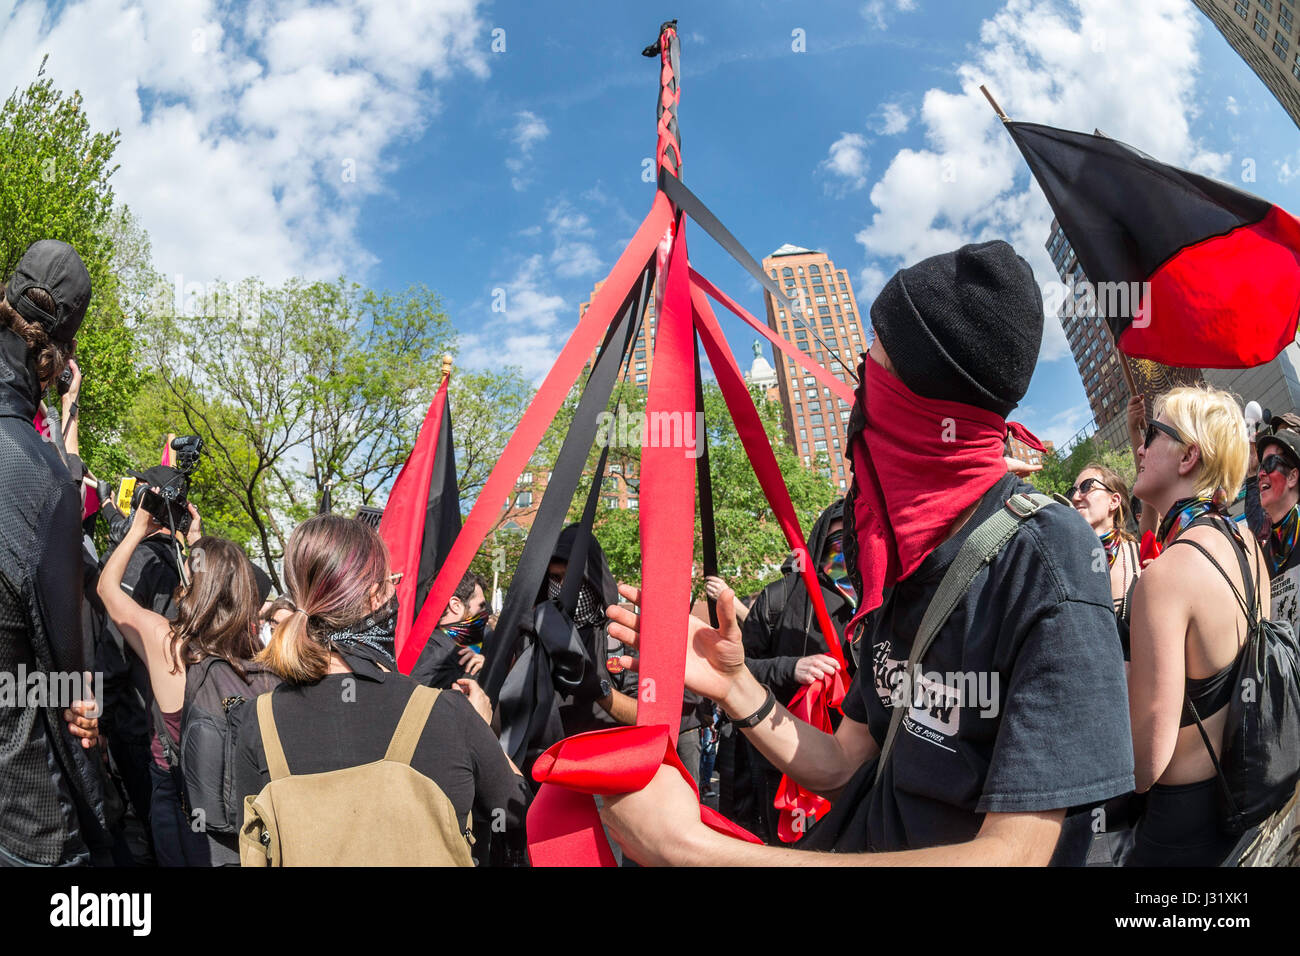 New York, USA. 01st May, 2017. New York, NY 1 May 2017 - Anarchists dance around a Maypole at a May Day/International - Stock Image